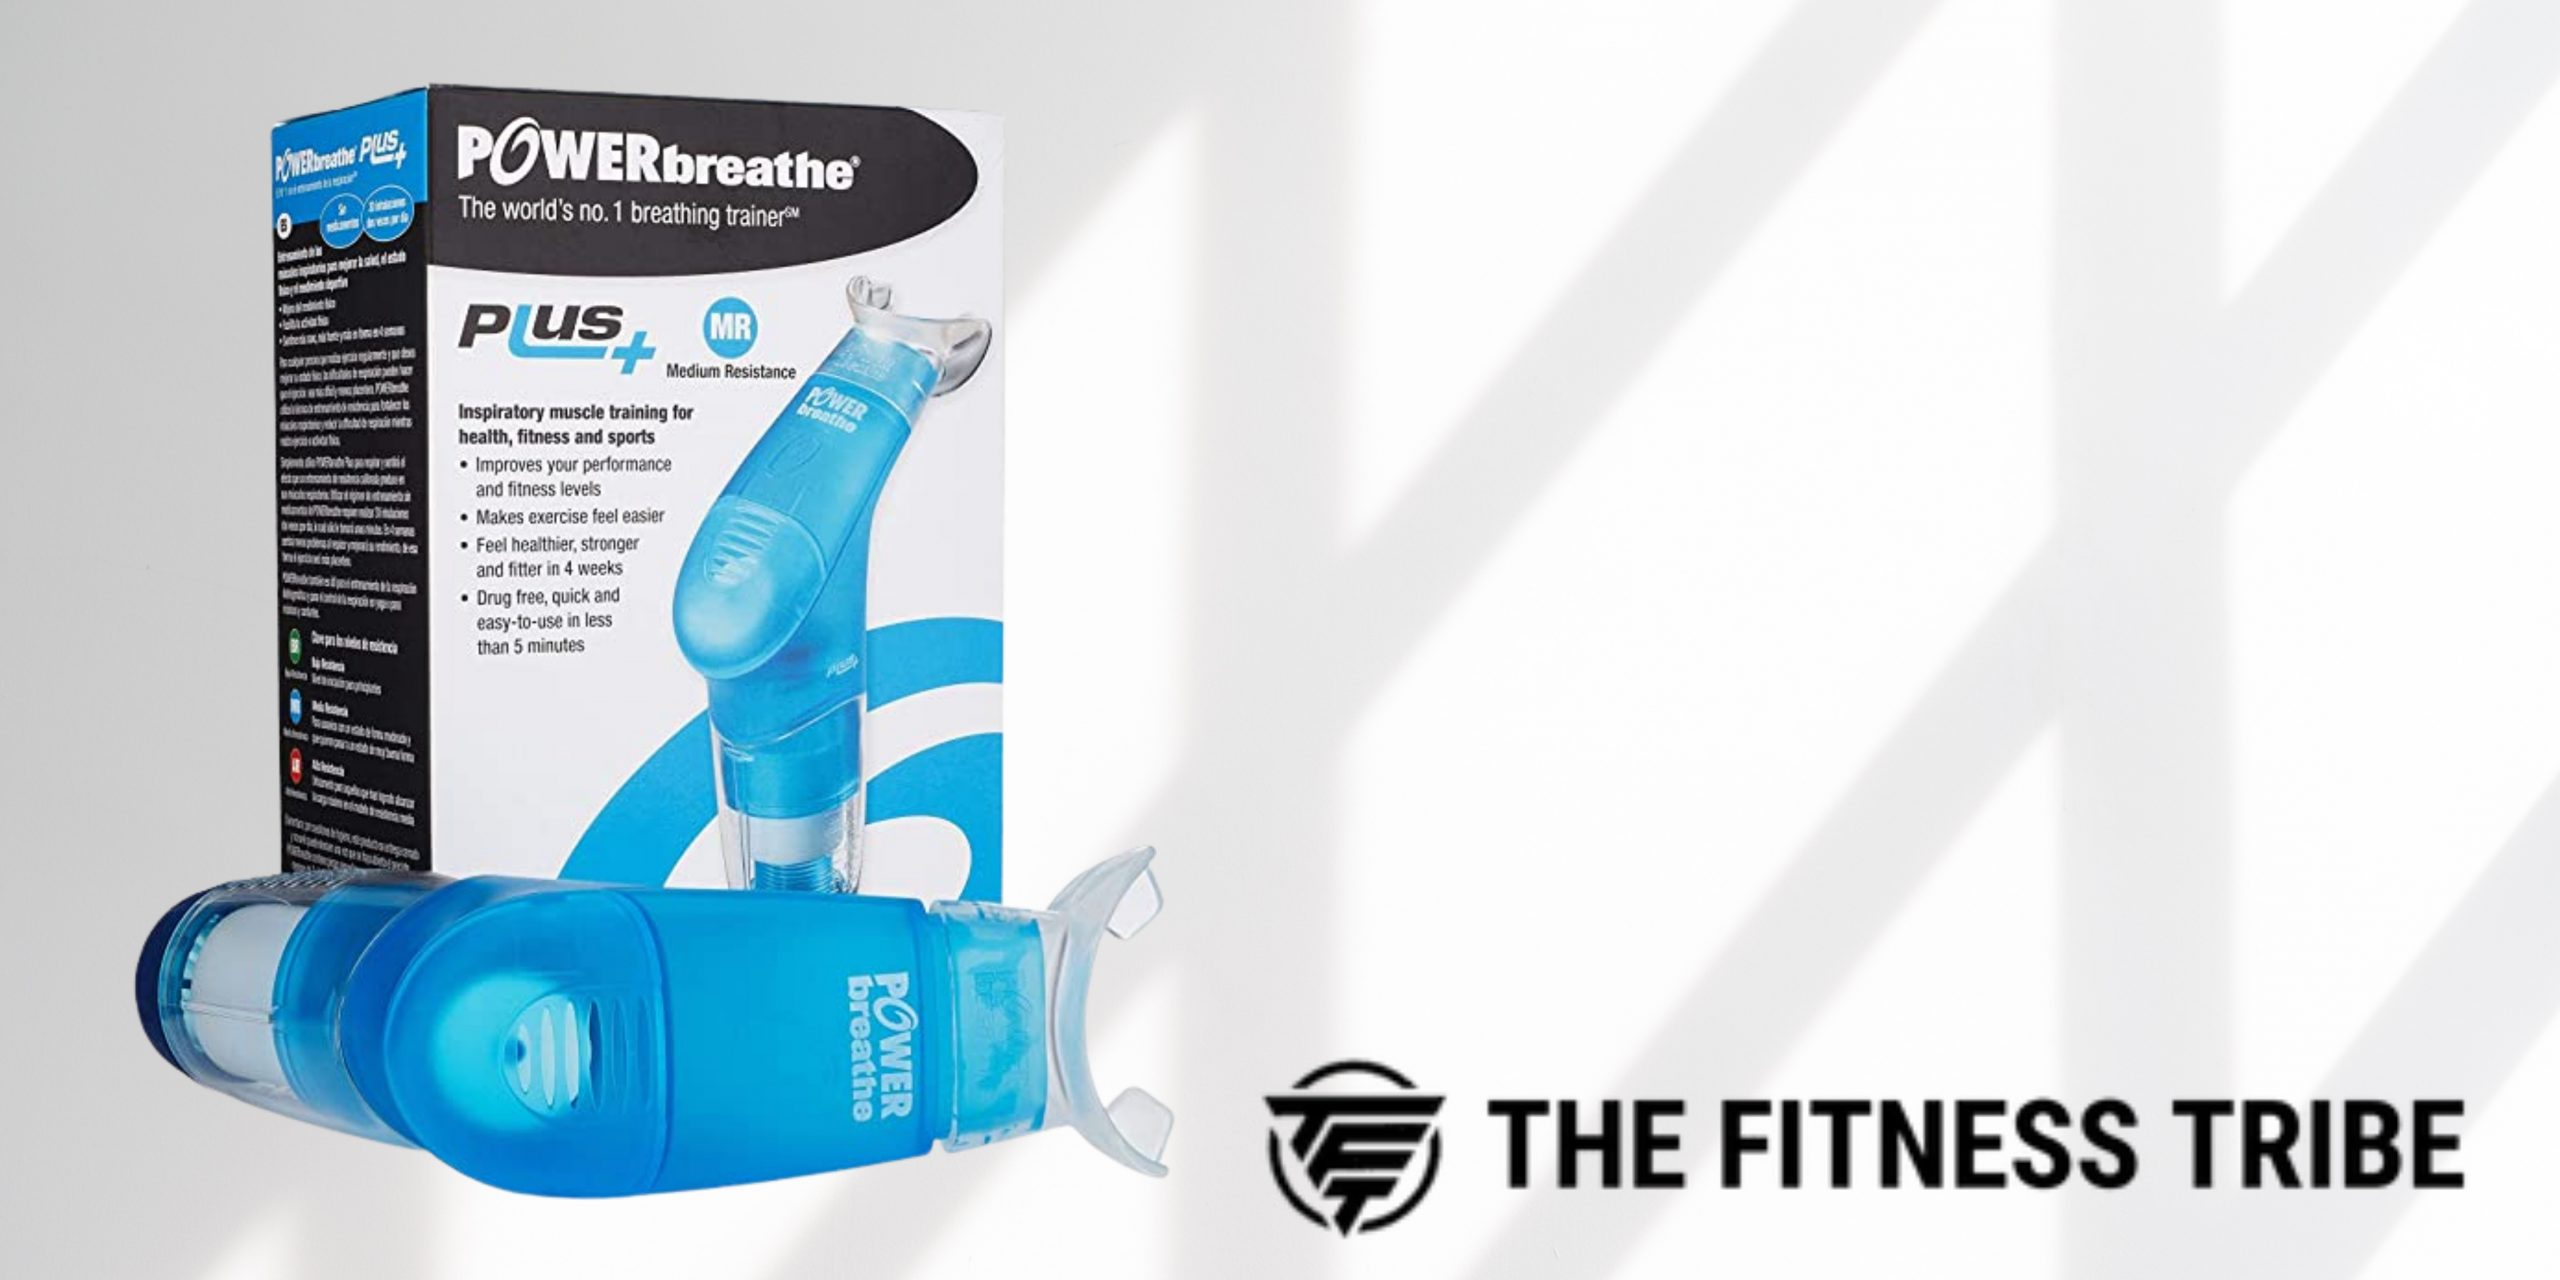 POWERbreathe | Plus 2 Fitness Breathing Muscle Trainer